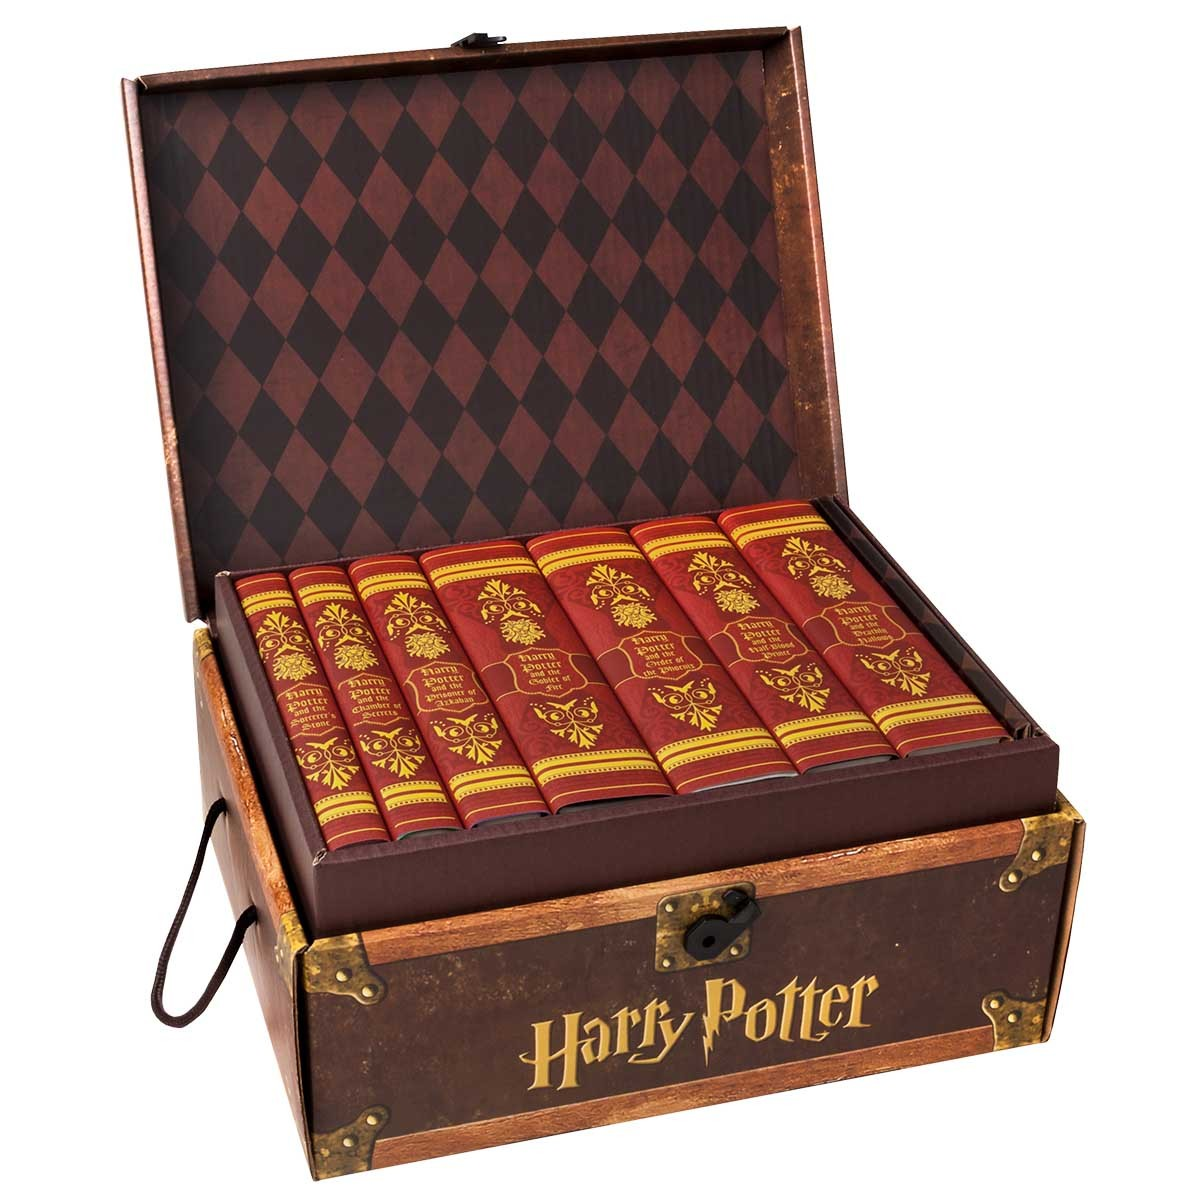 holiday-gift-ideas-for-harry-potter-fans